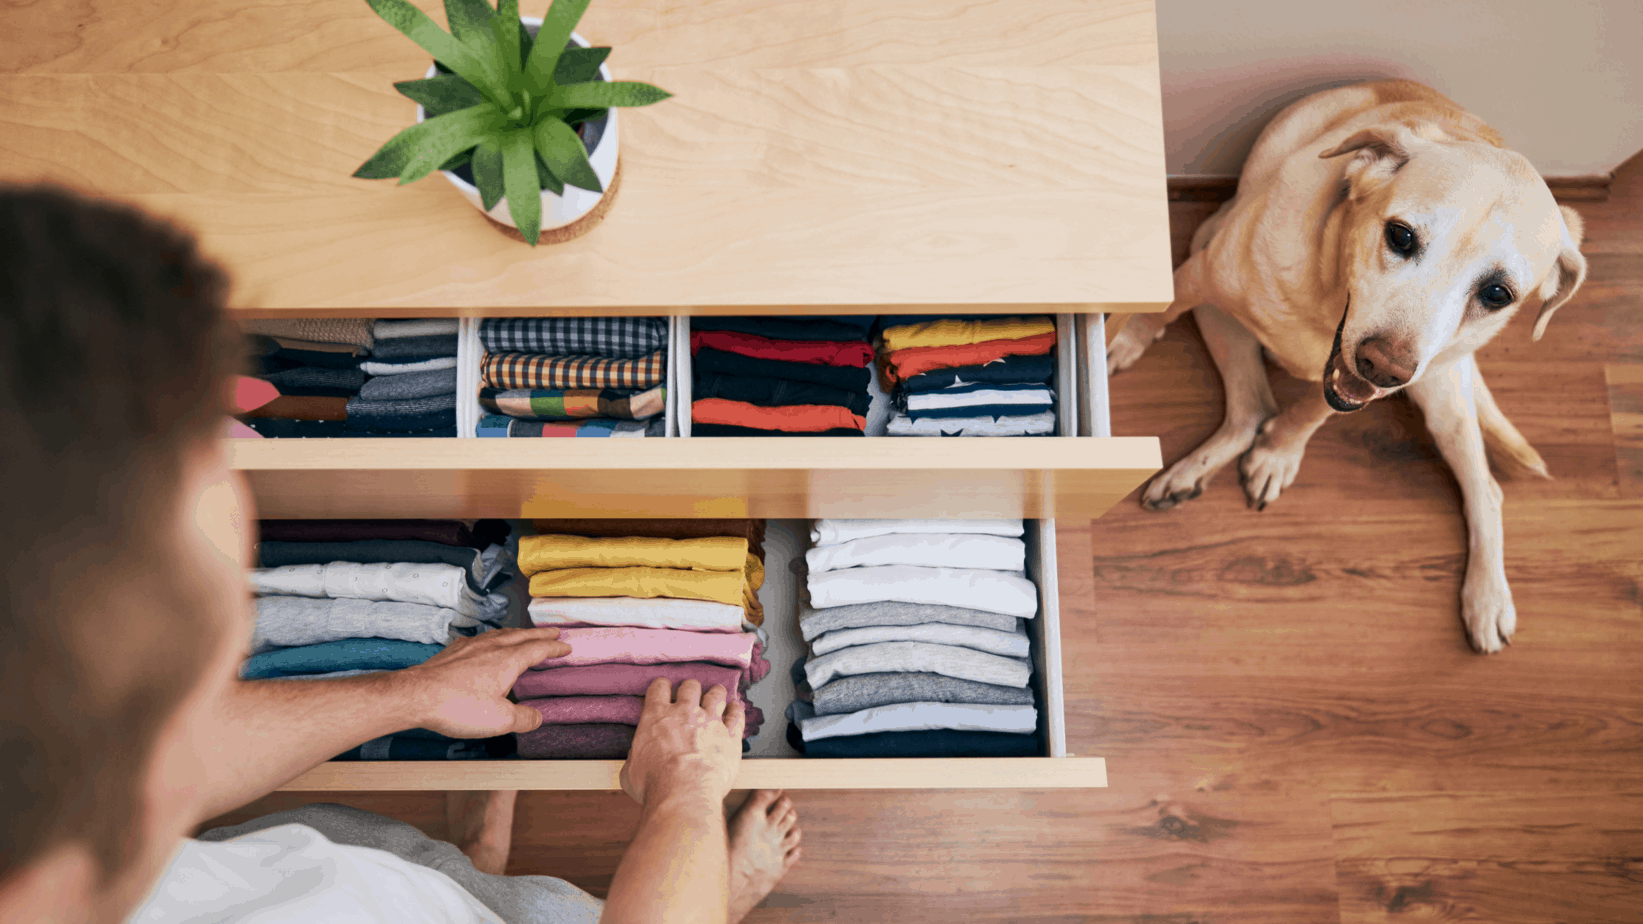 5 home organization tips